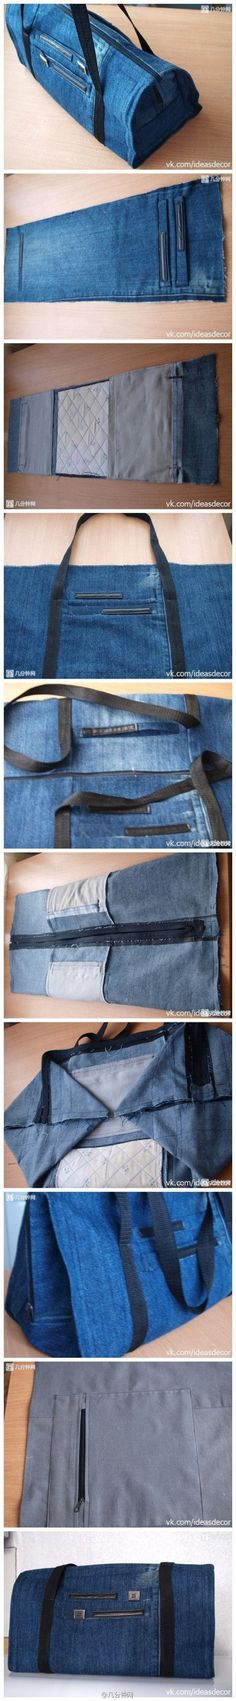 jeans bag … More: